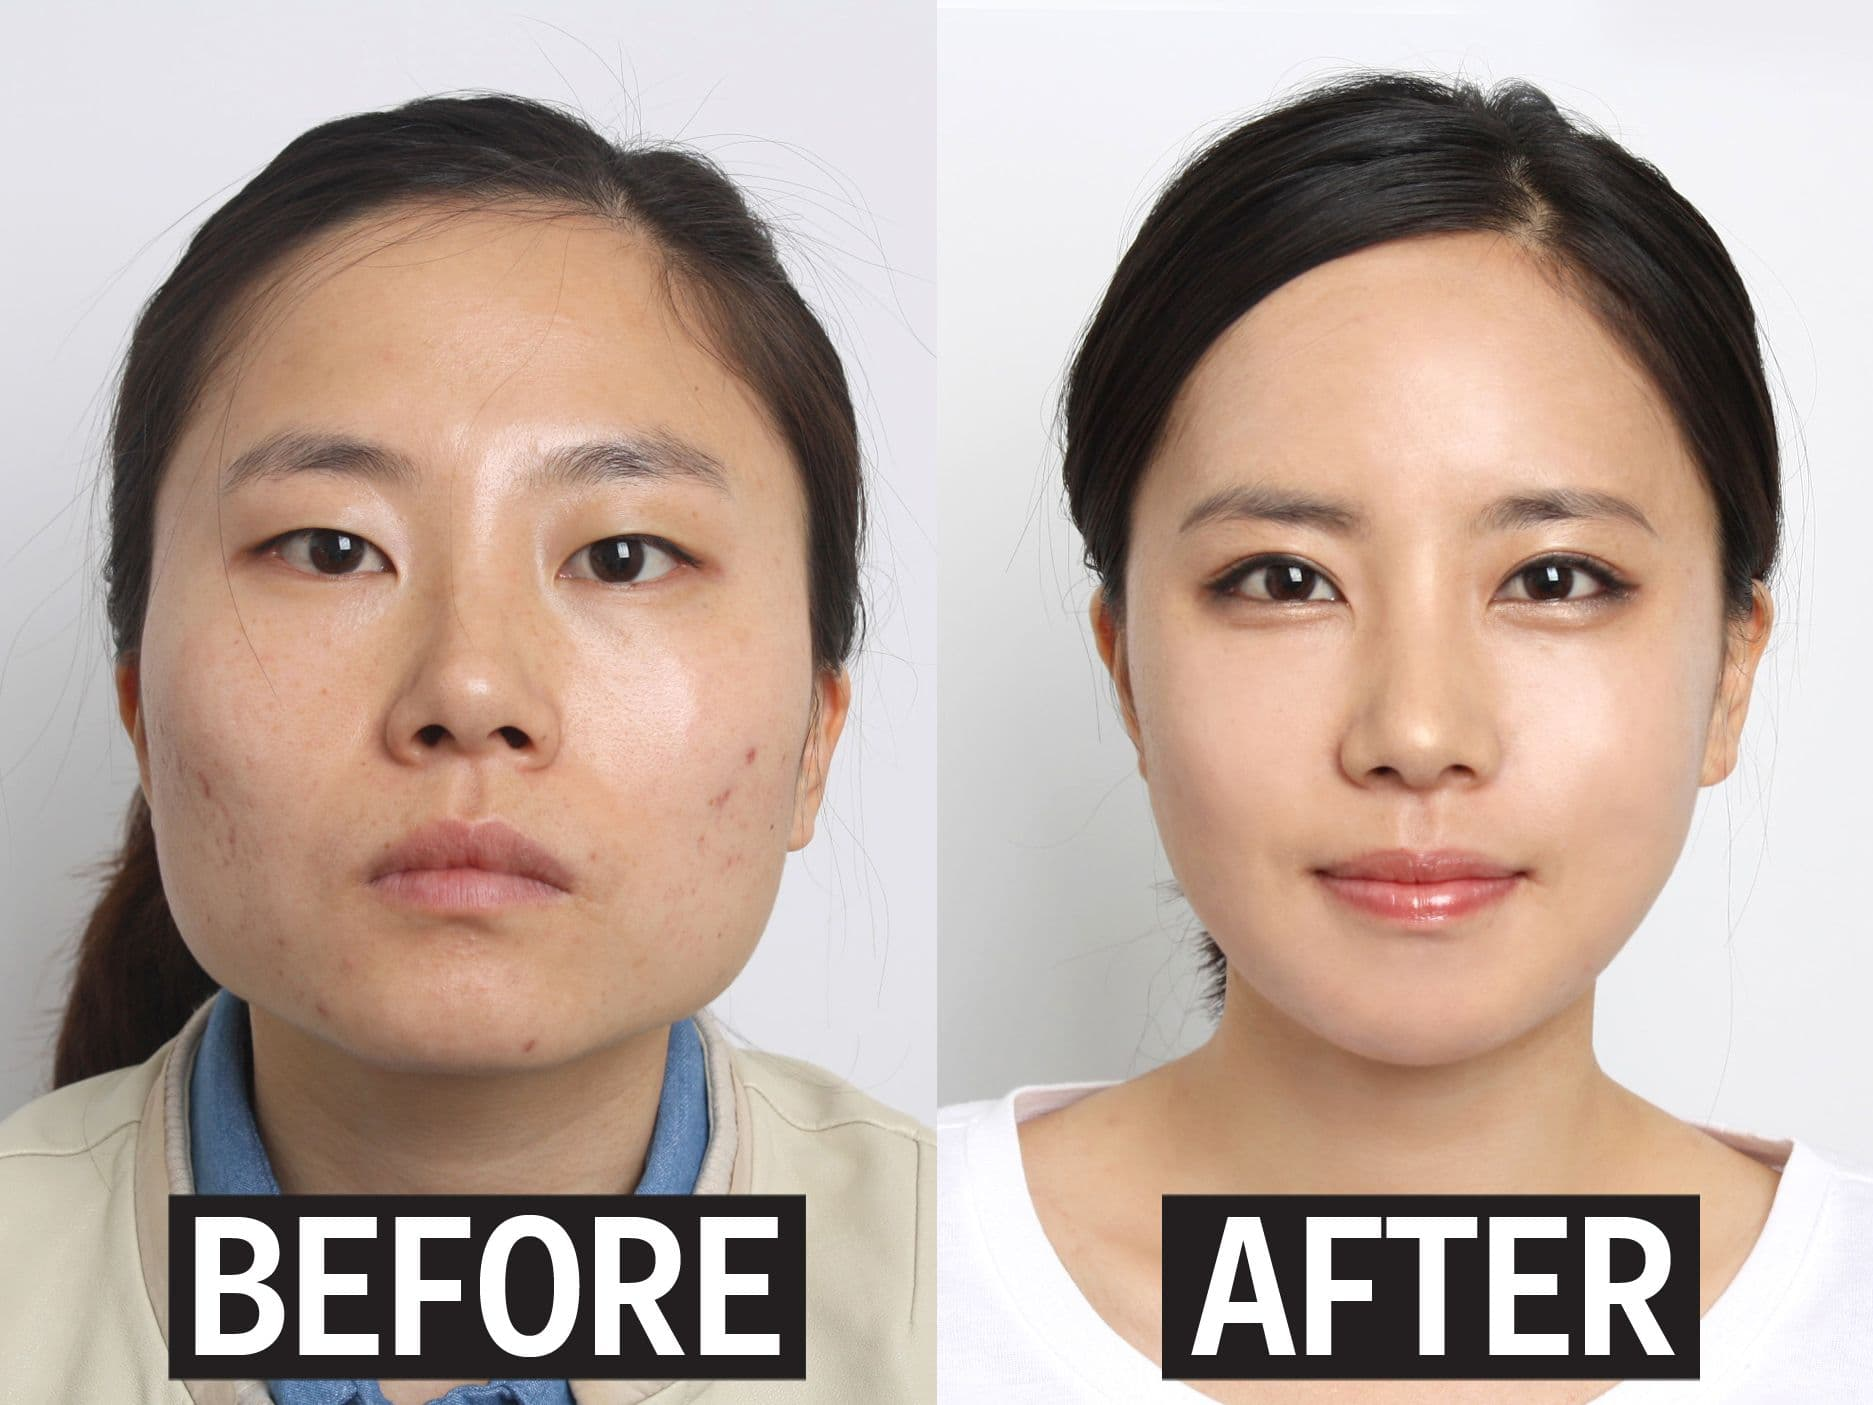 Korean Parents Are Having Their Kids Get Plastic Surgery Before College 1